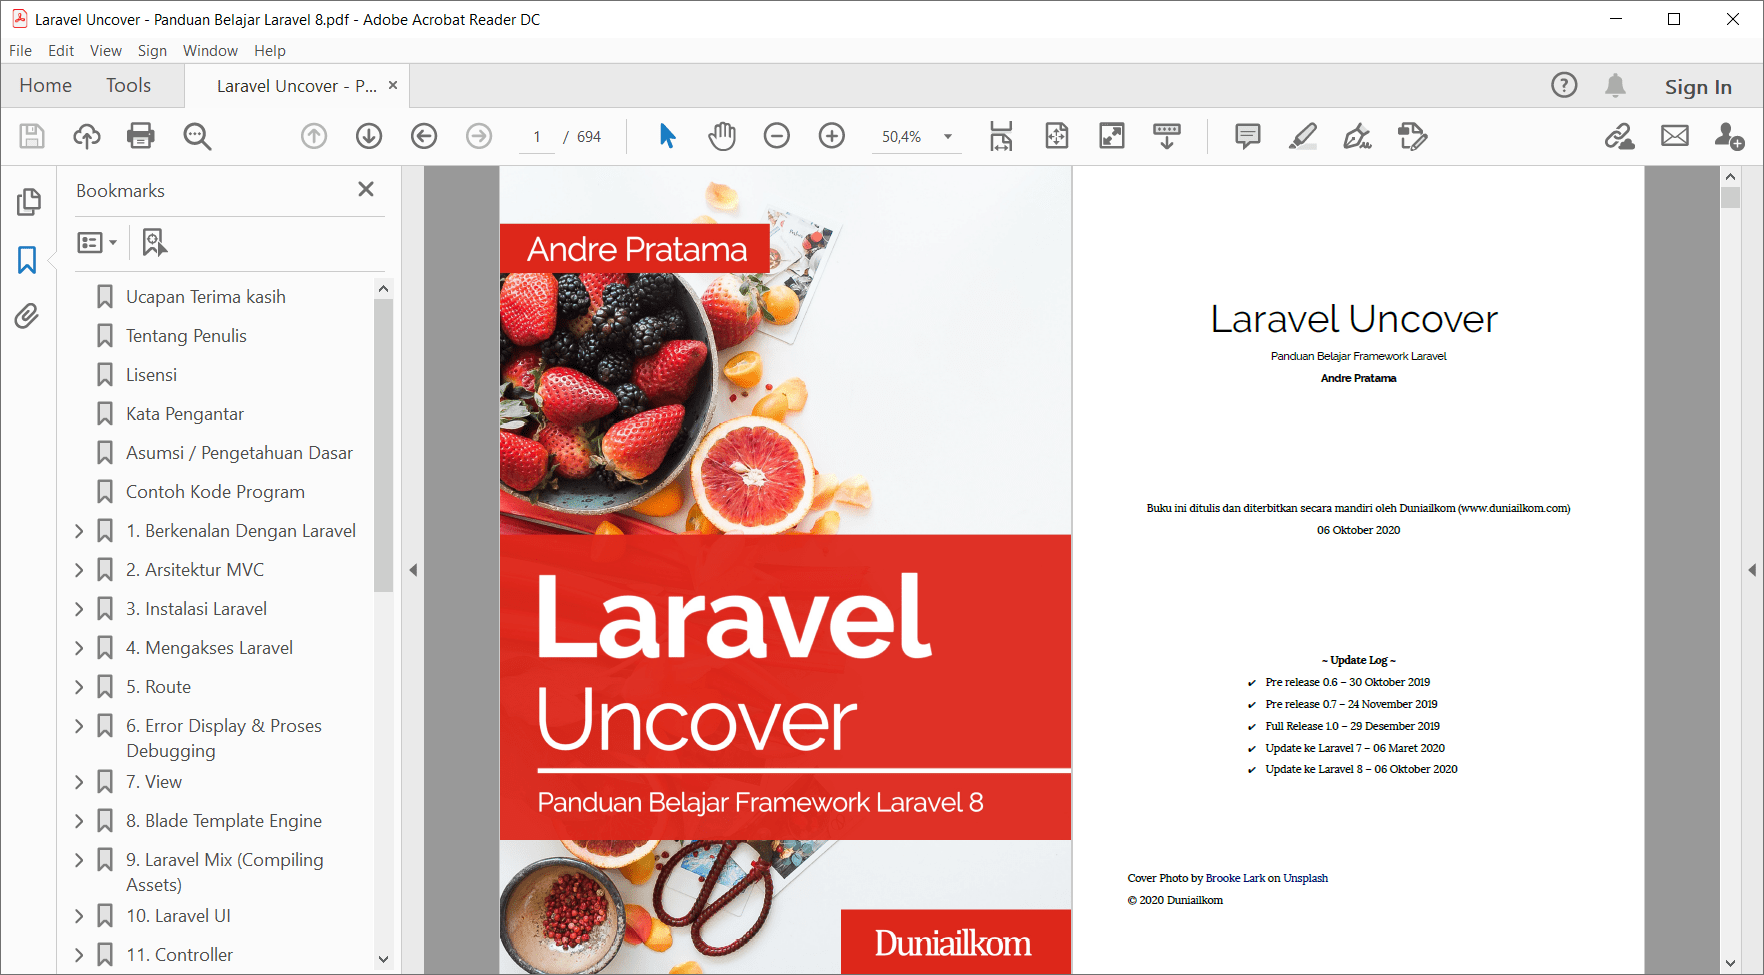 Tampilan eBook Laravel Uncover (8.x)